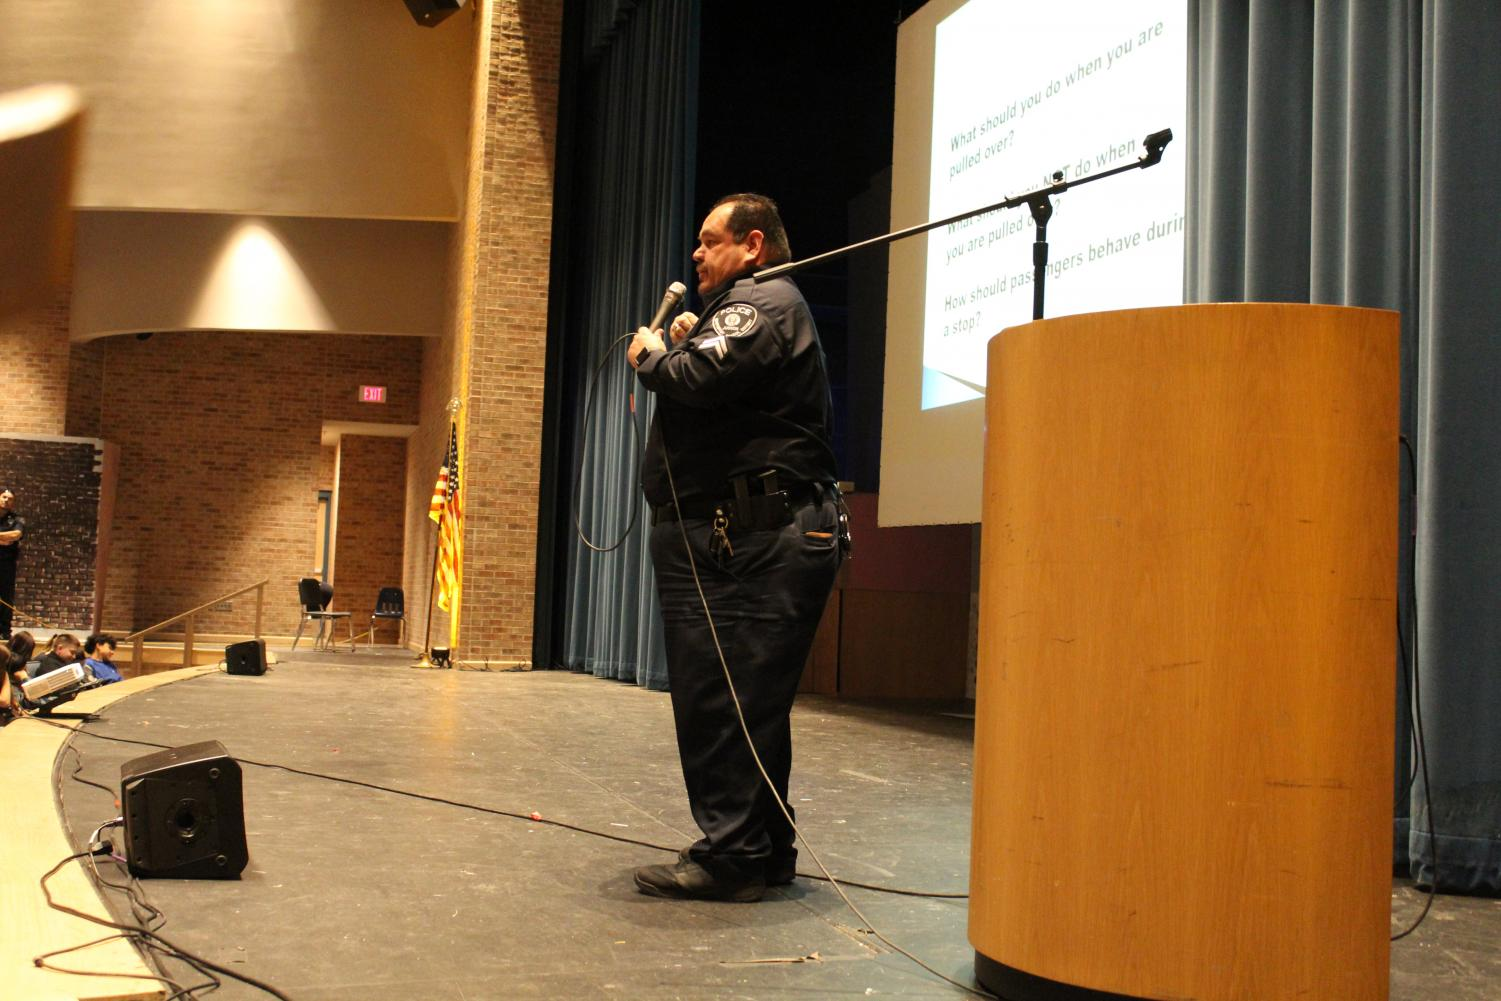 Officer Patrick Resendis speaks to freshman about how to handle police interactions.